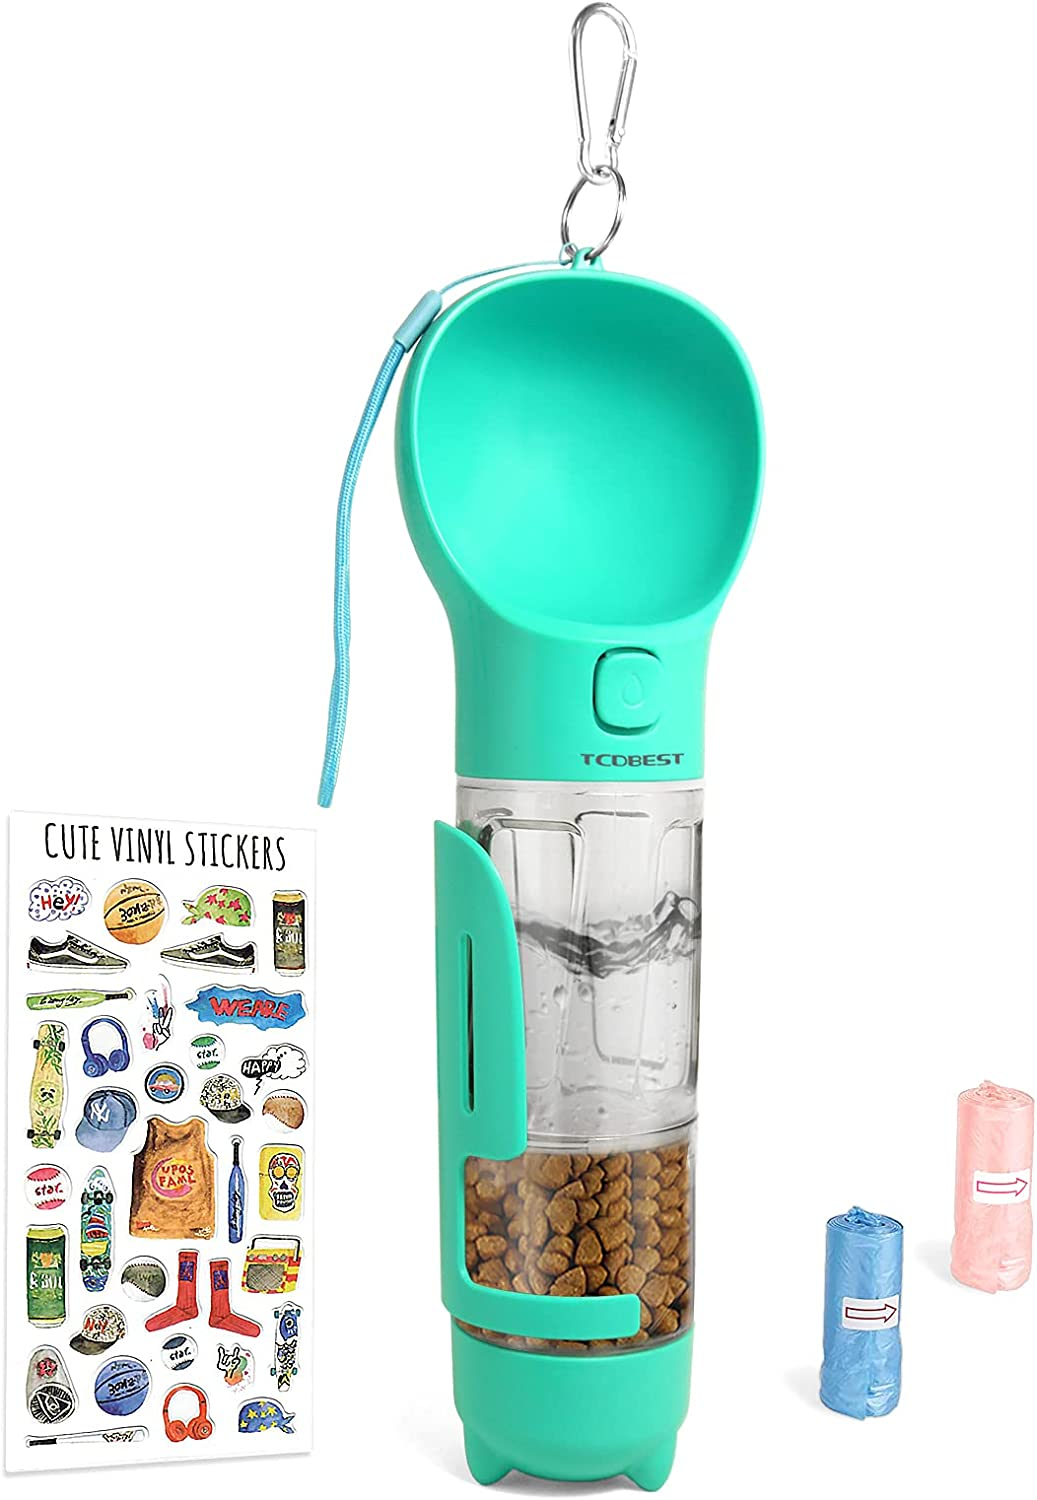 TCDBEST Dog Water Bottle 5 in 1 with Pooper Scooper, Poop Bags, Food Storage Container for Outdoors Hiking Walking